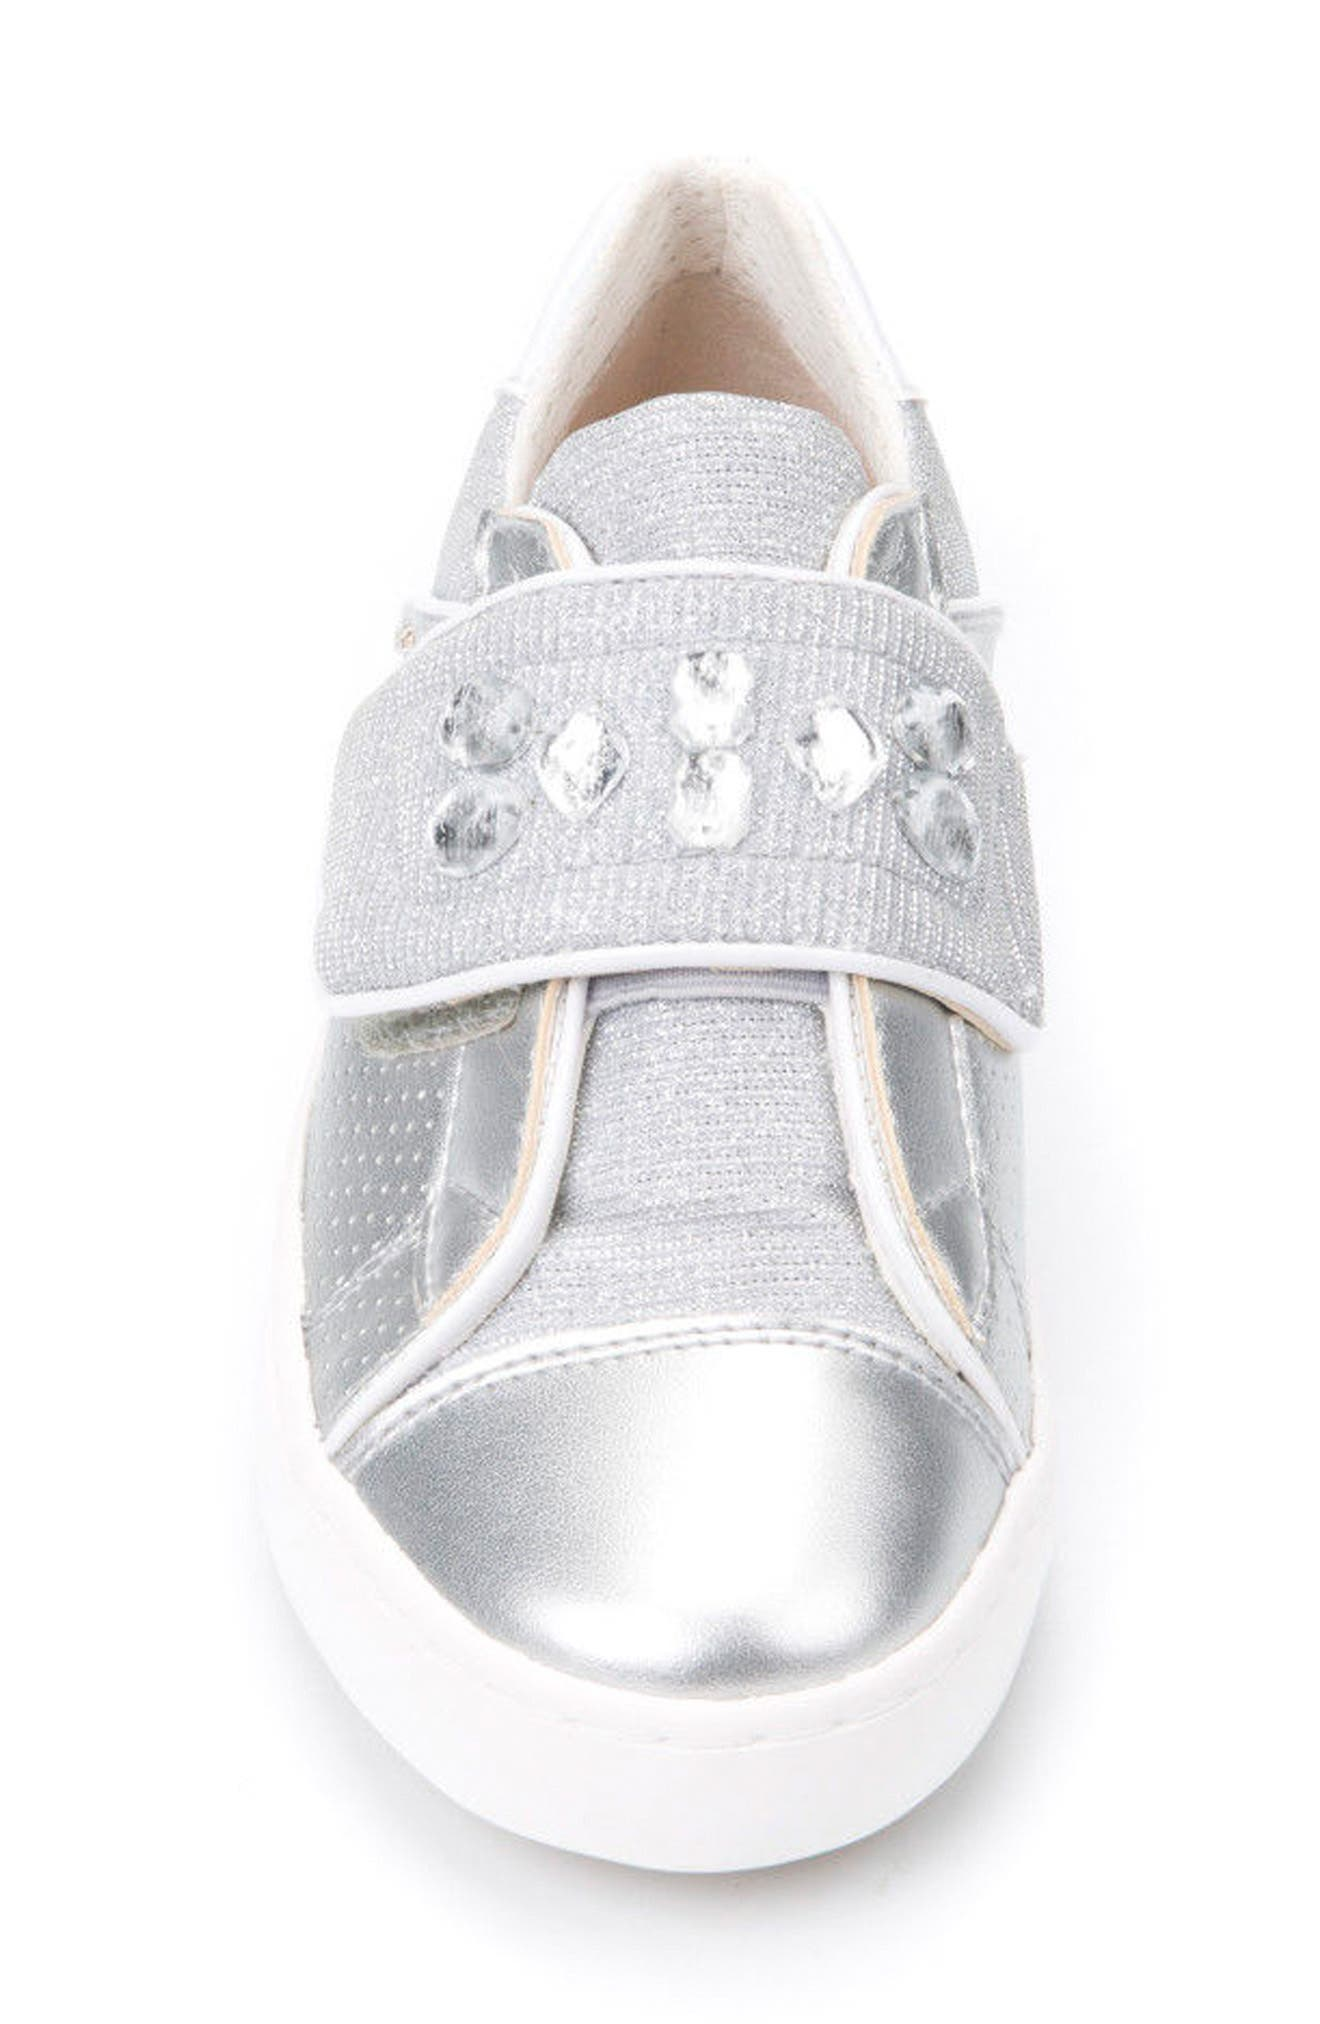 Kilwi Metallic Embellished Sneaker,                             Alternate thumbnail 4, color,                             Silver